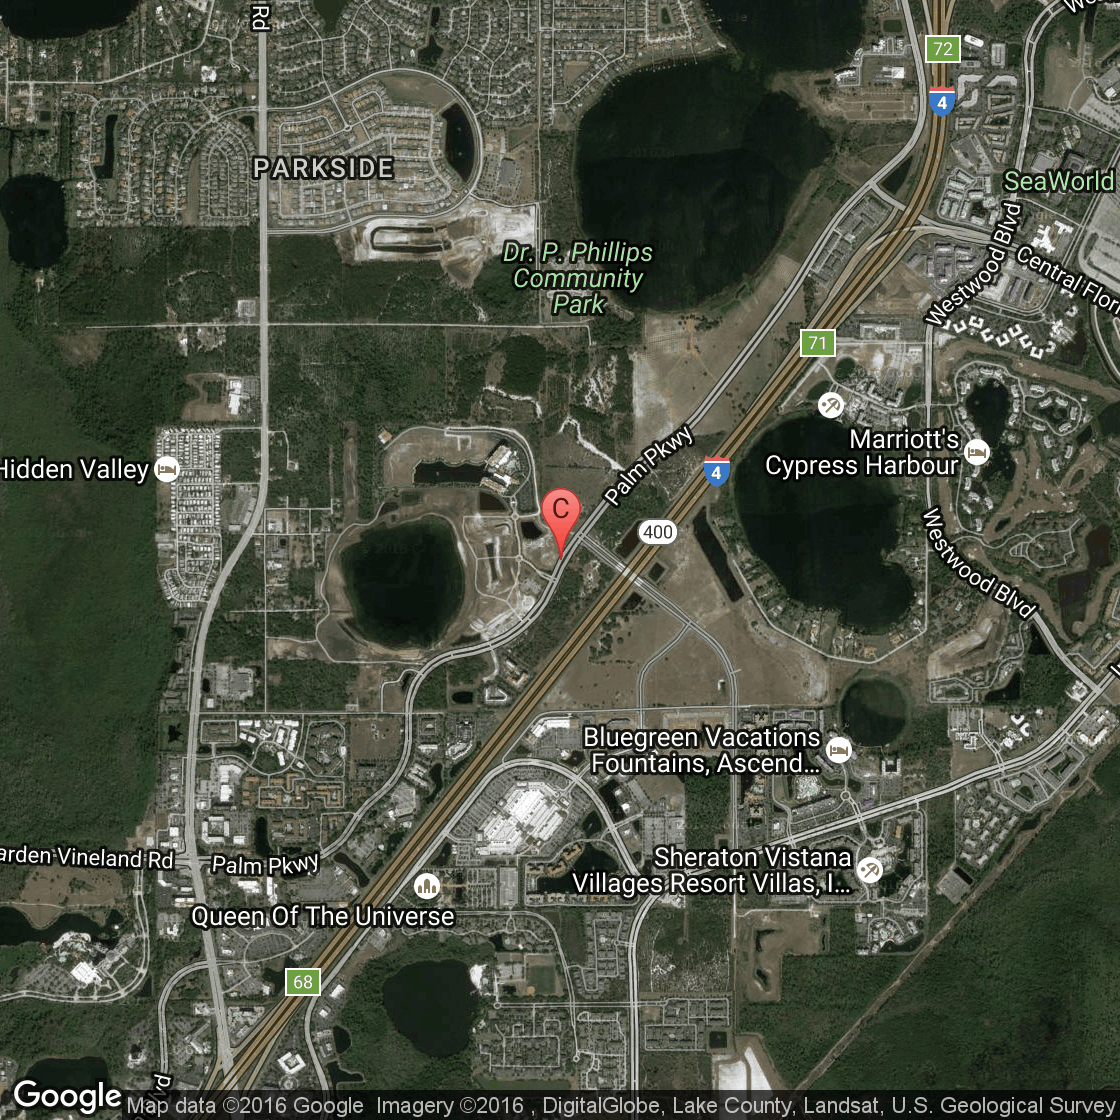 Hotels On Palm Parkway In Orlando, Florida